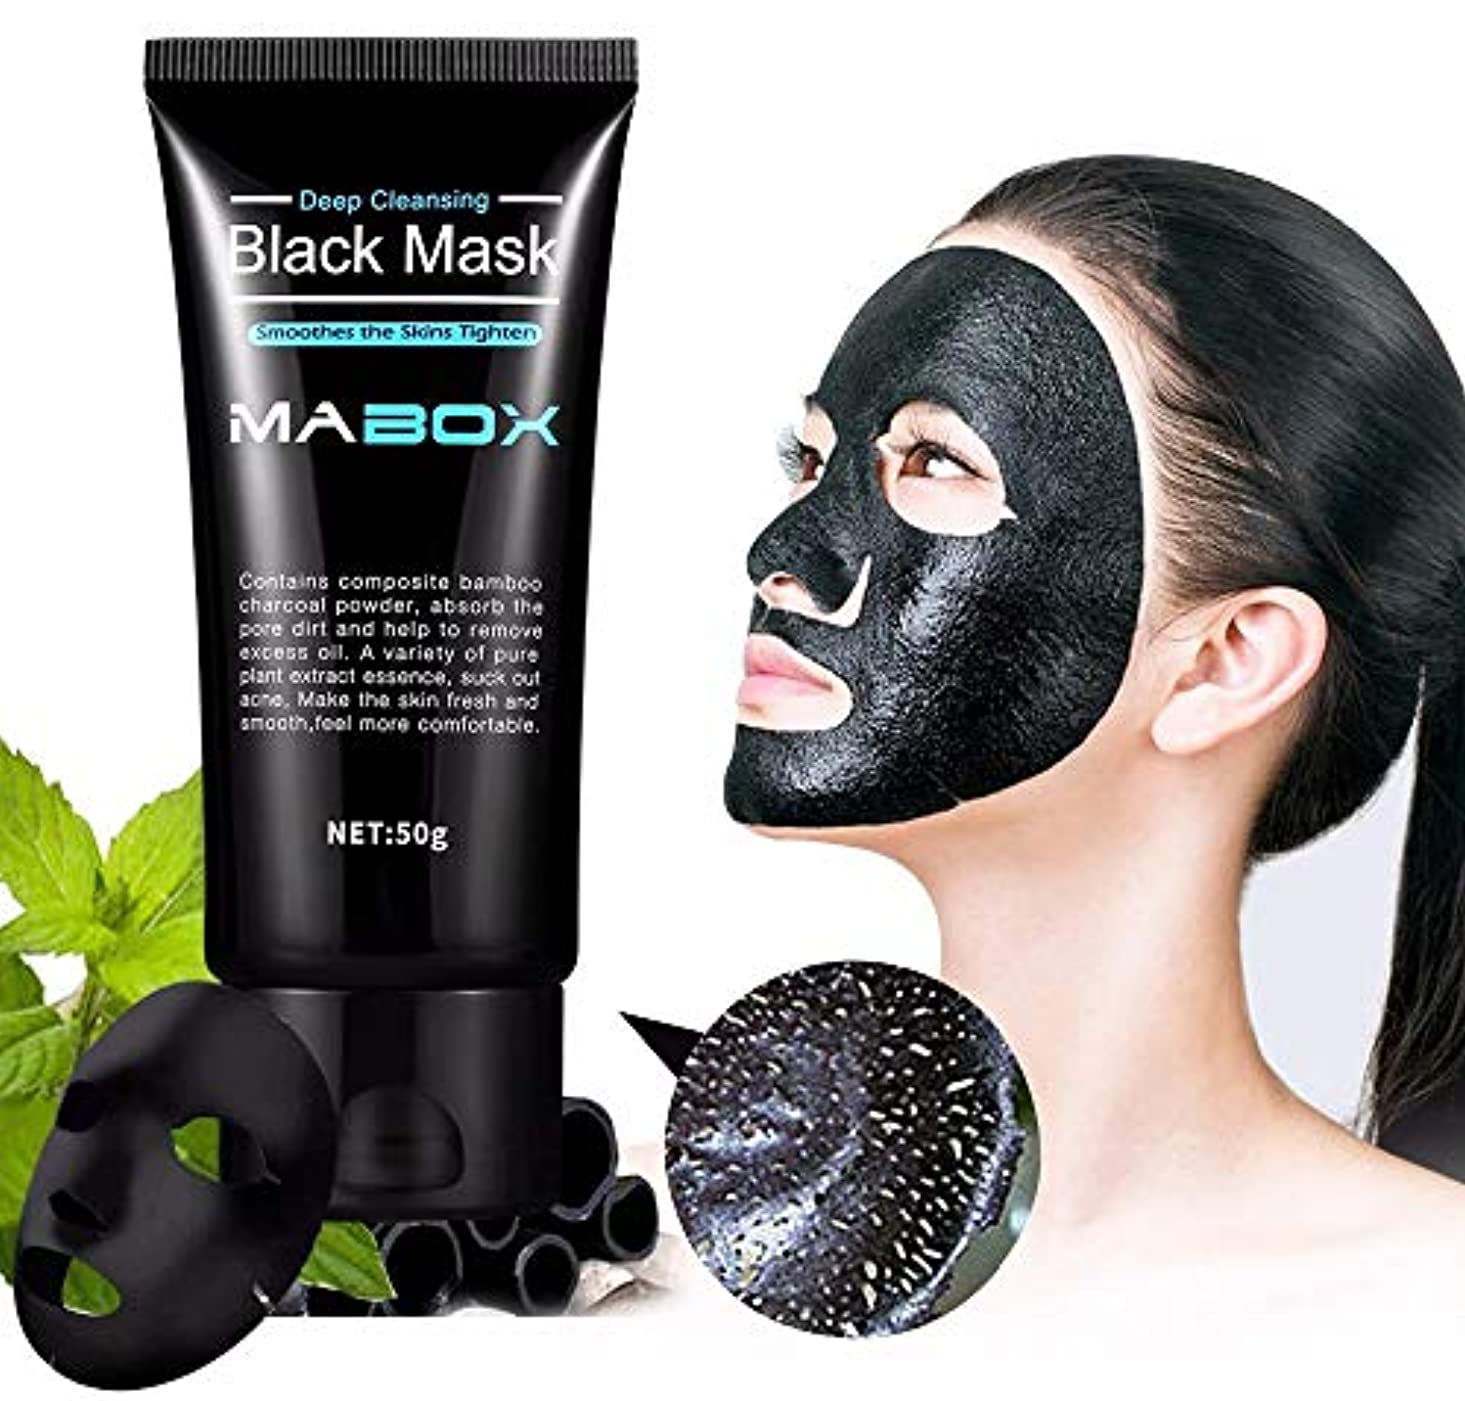 ダーリンアセオンスMabox Black Mask Peel Off Bamboo Charcoal Purifying Blackhead Remover Mask Deep Cleansing for AcneScars Blemishes...